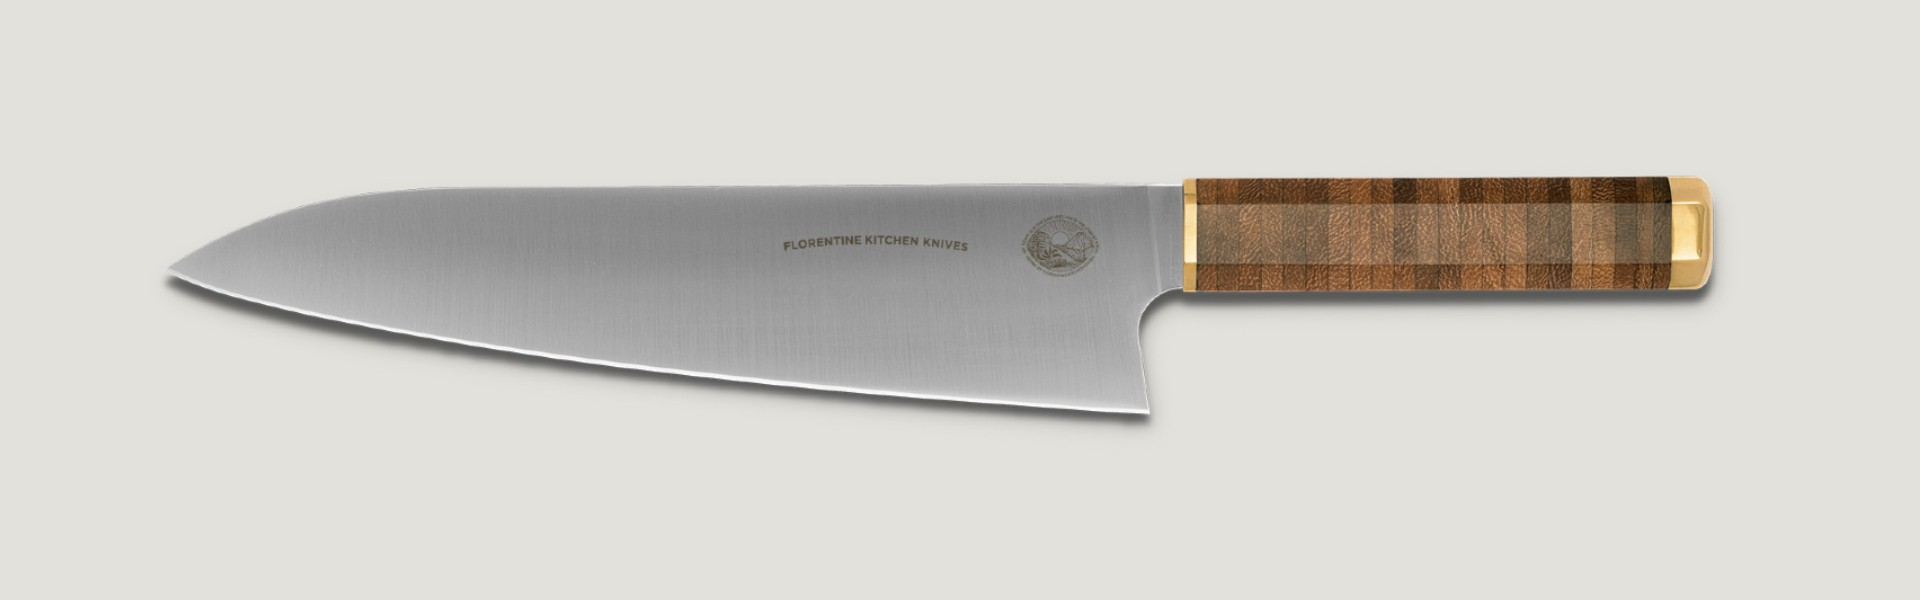 Florentine Kitchen Knives KEDMA Gyoto